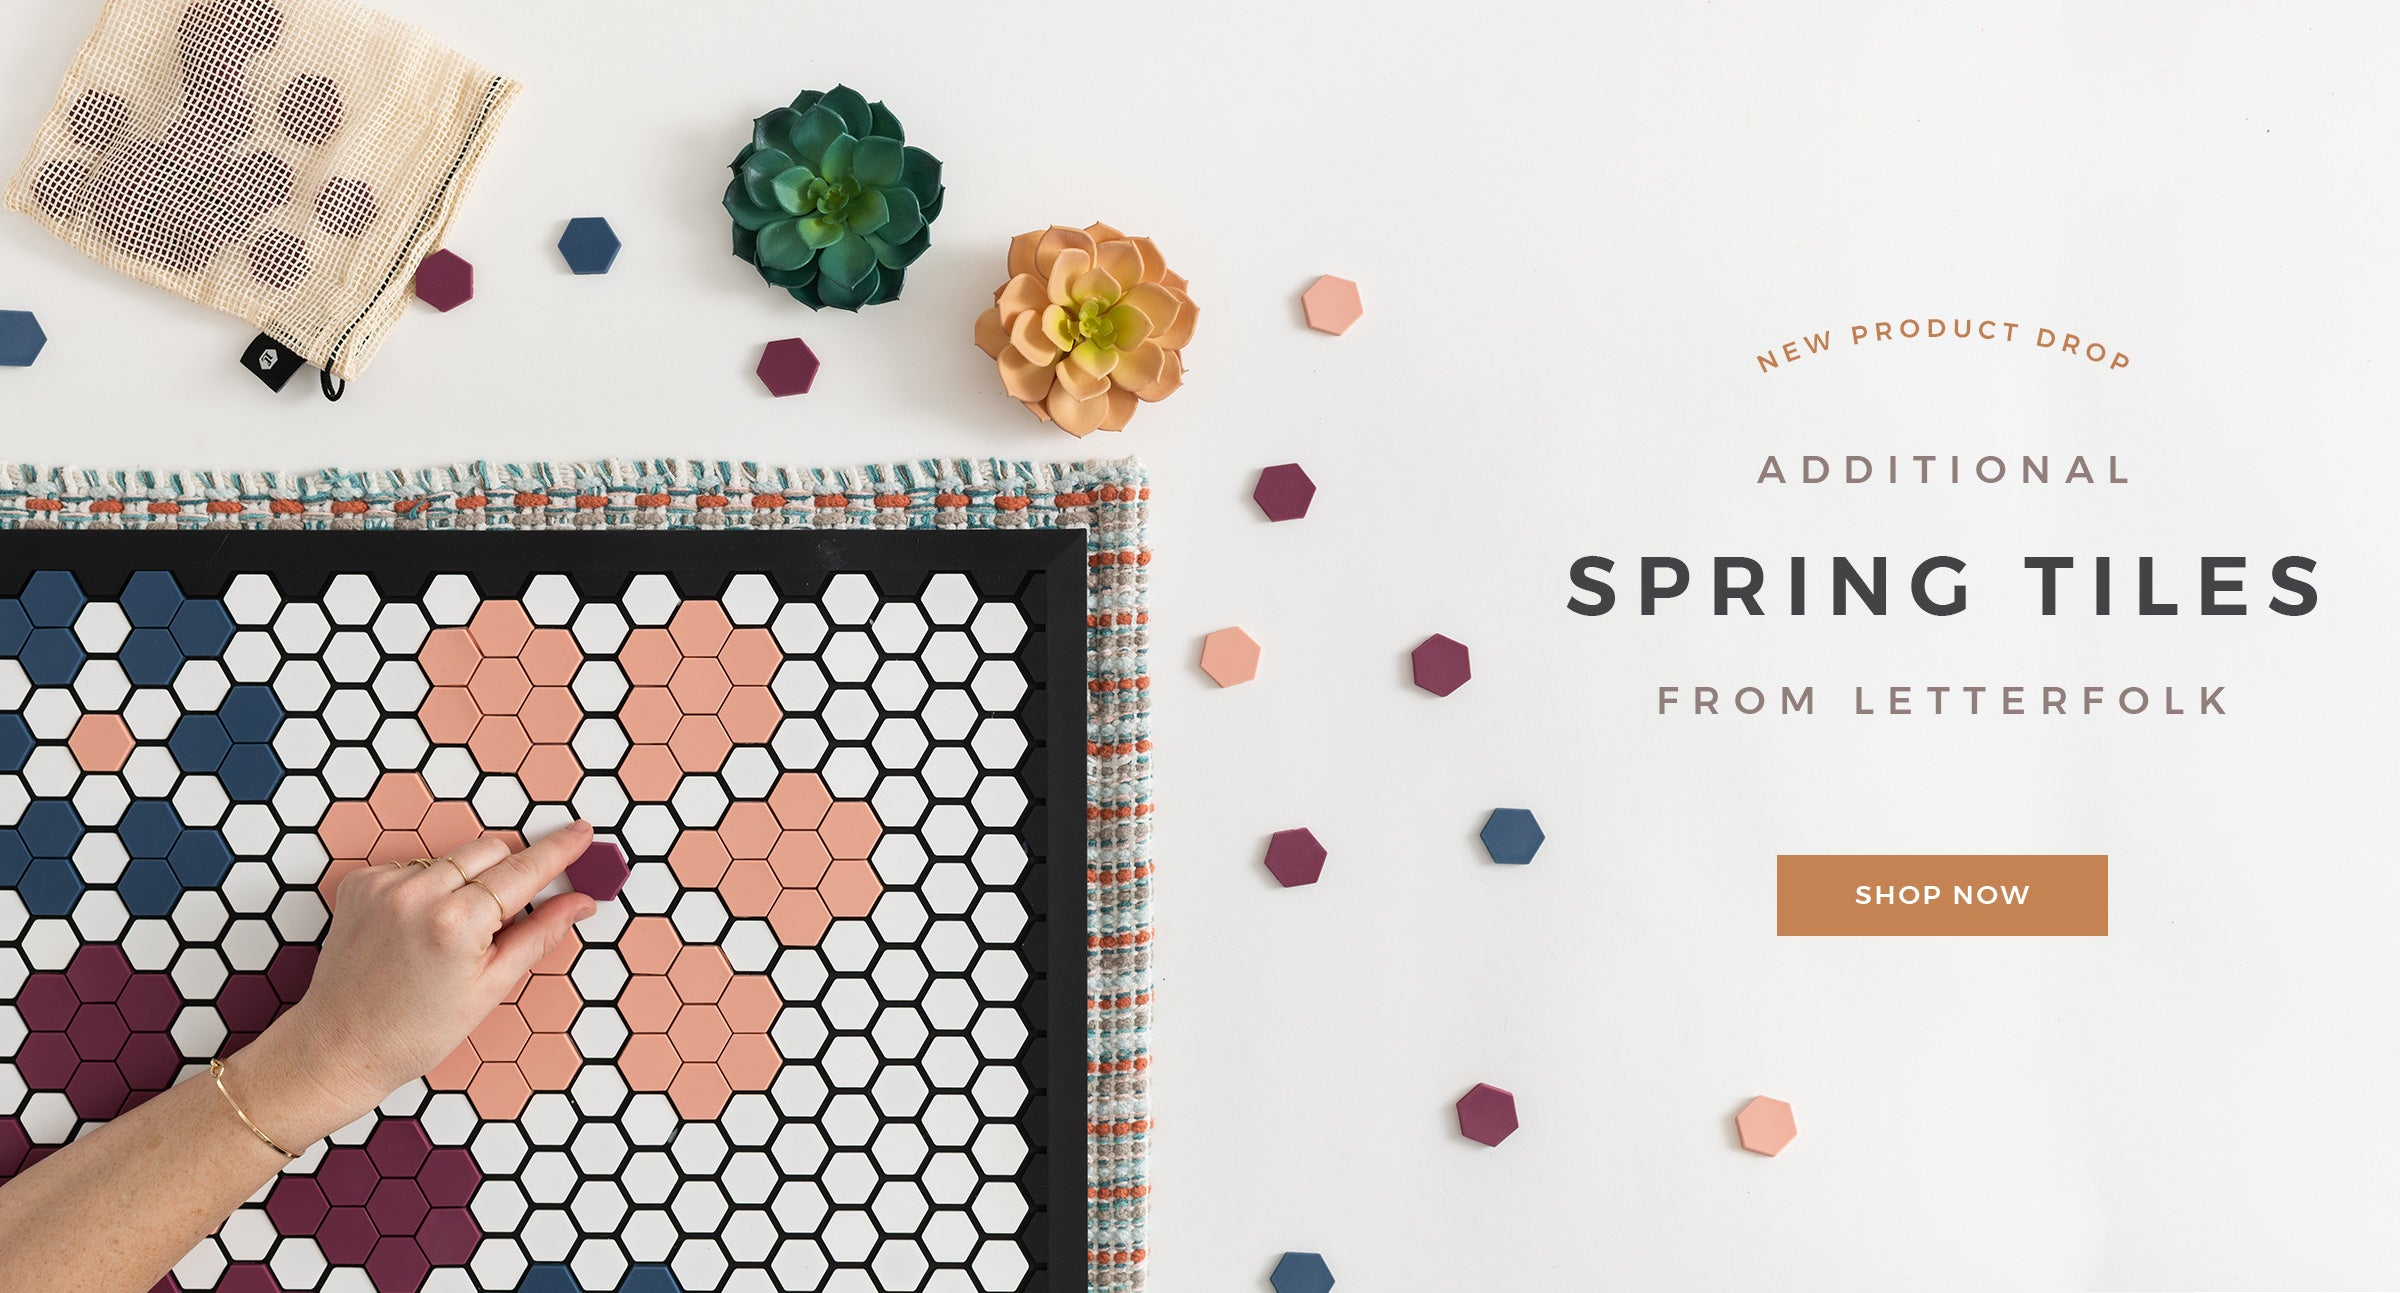 Additional Spring Tiles from Letterfolk